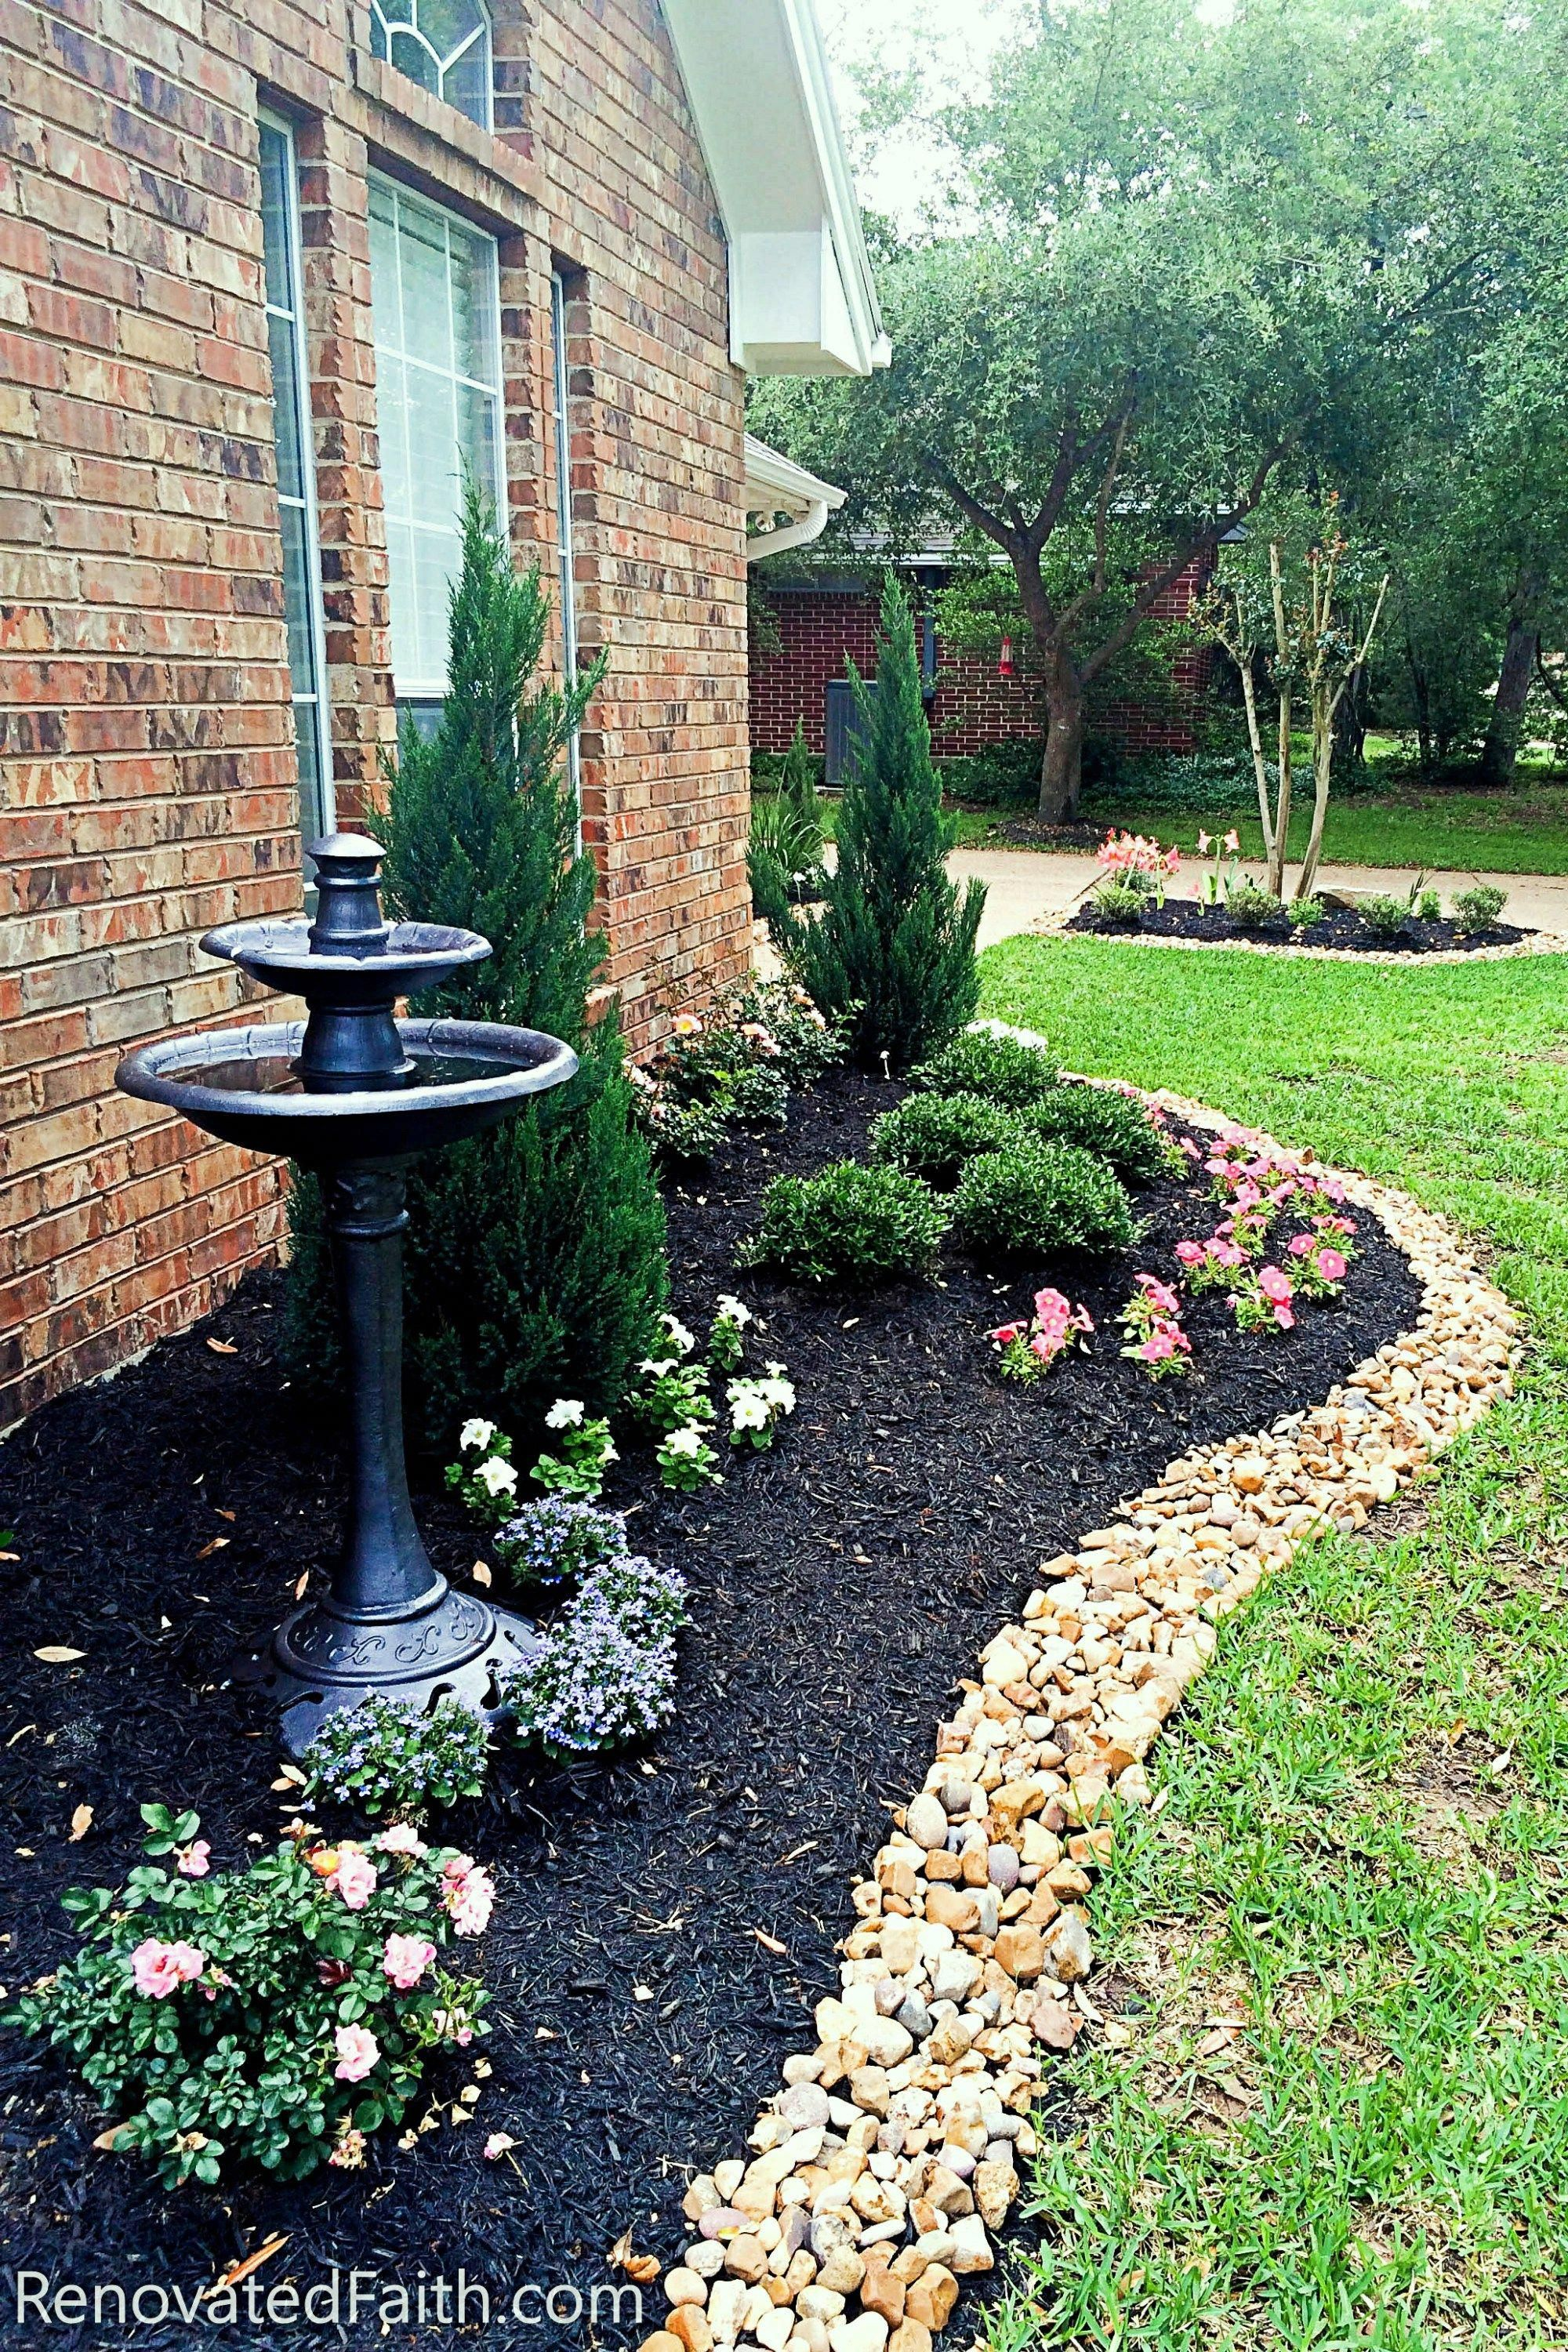 DIY Landscape Design - Want to save money by landscaping ...